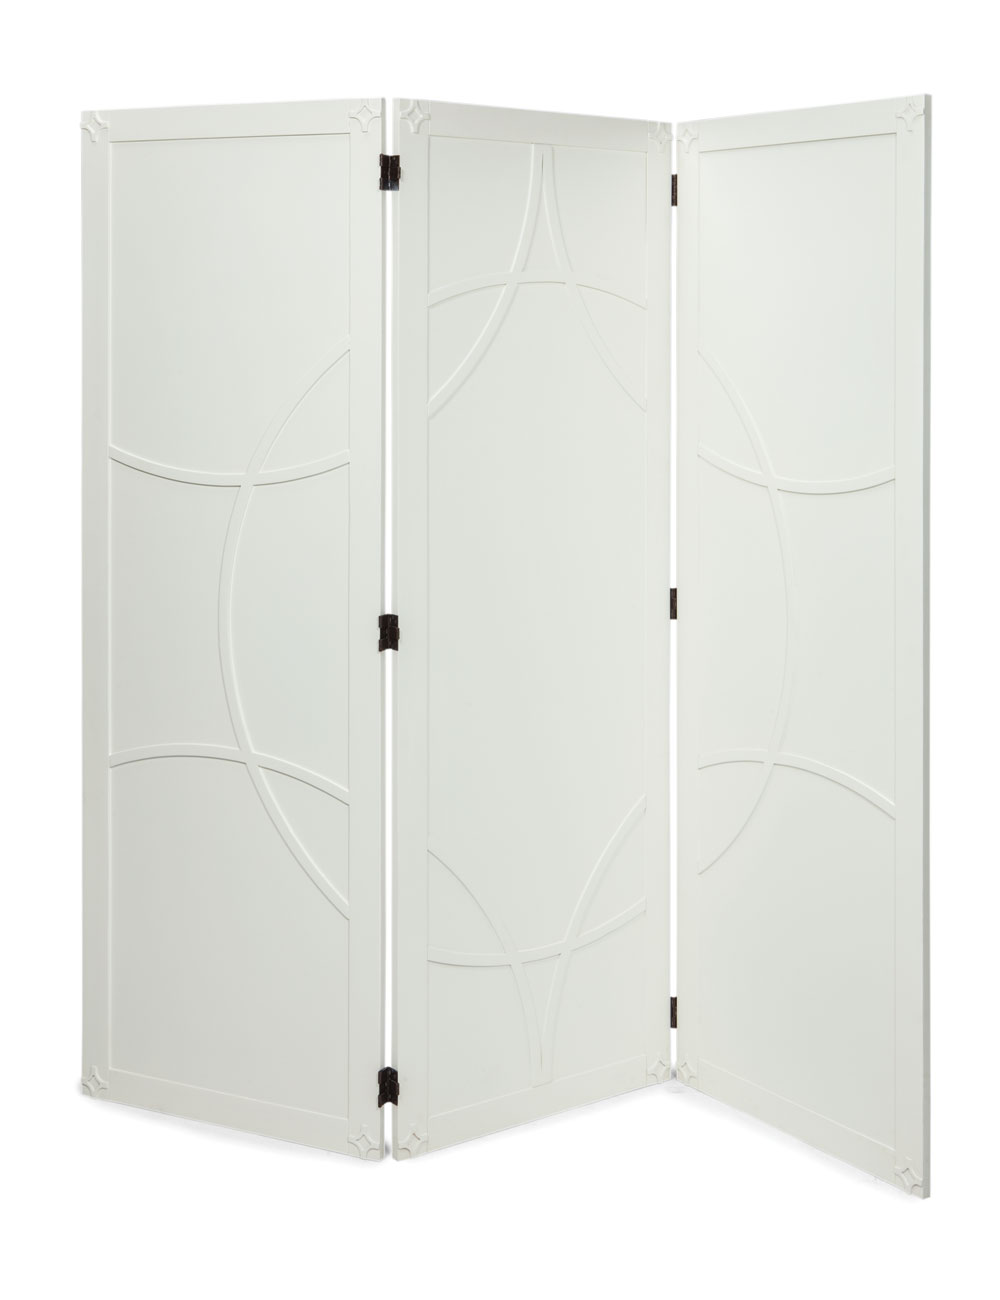 Brussels Room Divider Screen White